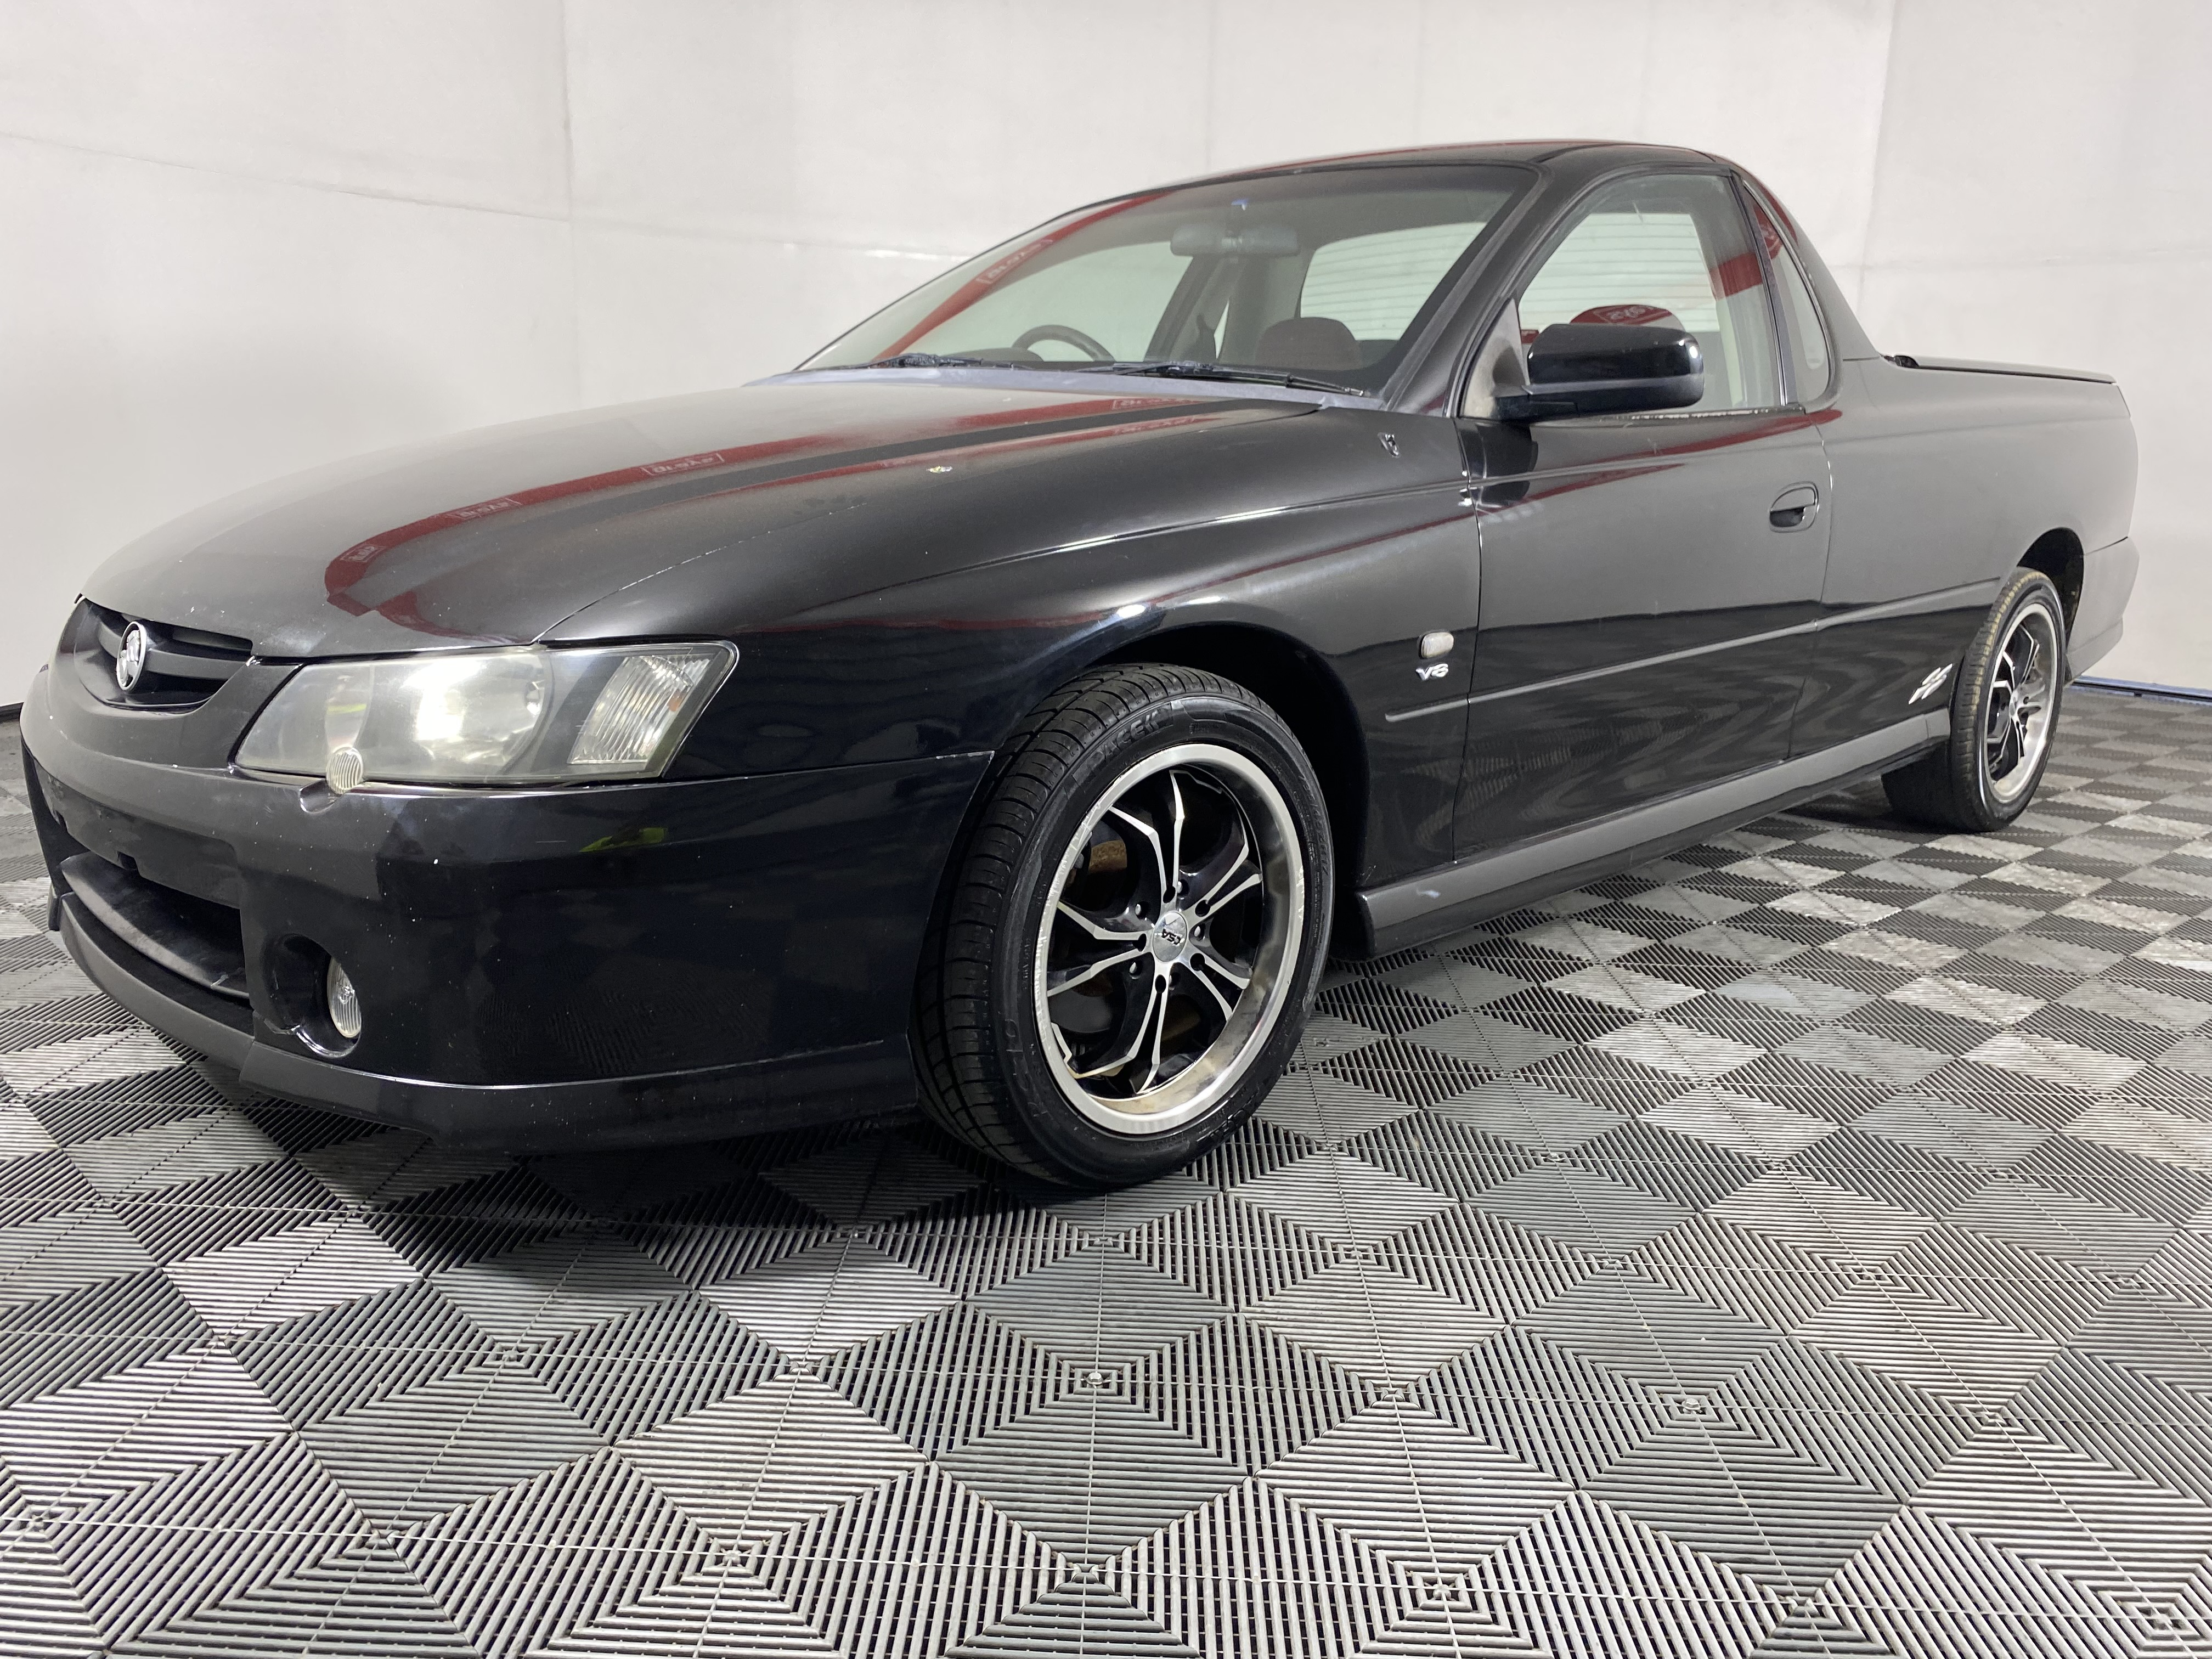 2003 Holden Ute SS VY Automatic Ute